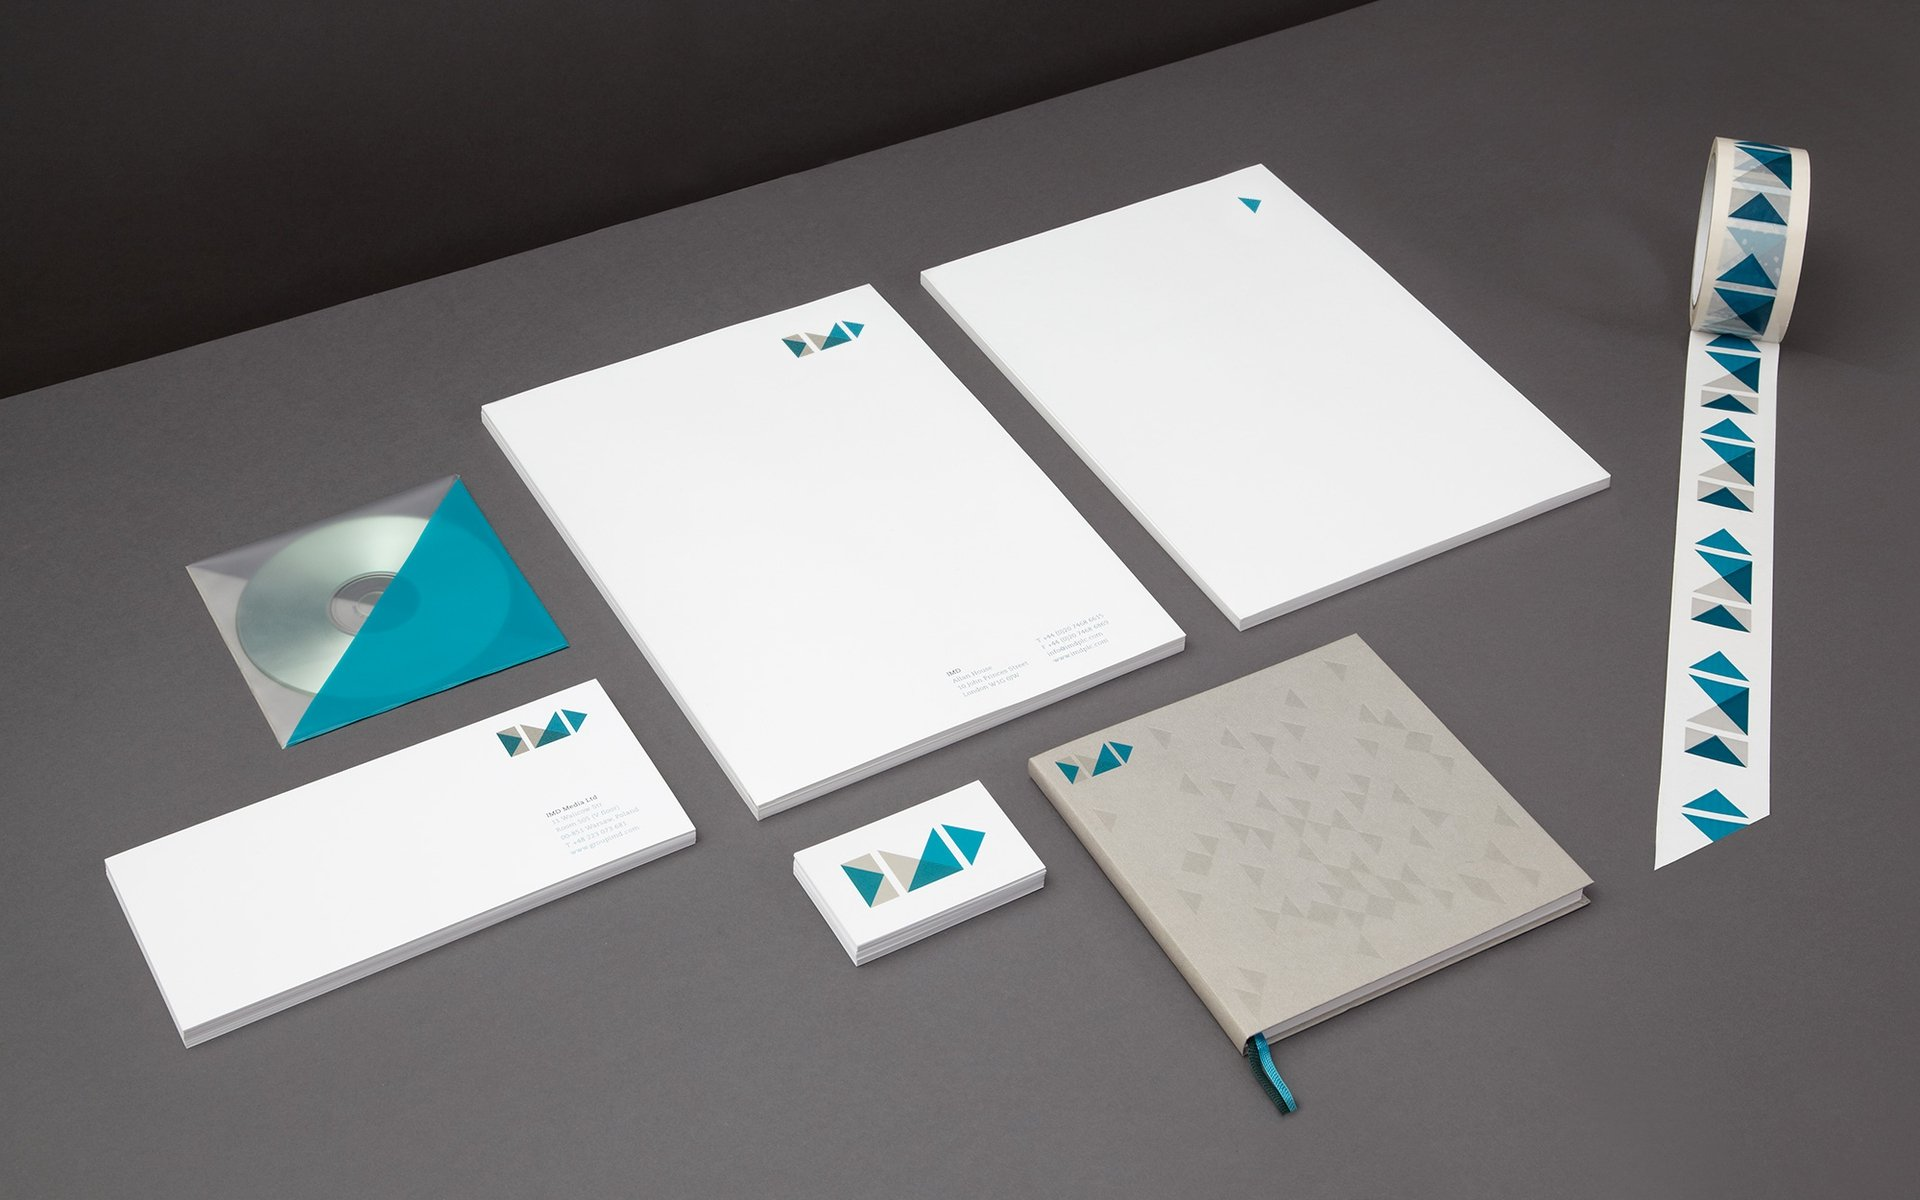 bob-design-imd-stationary-33354.jpg